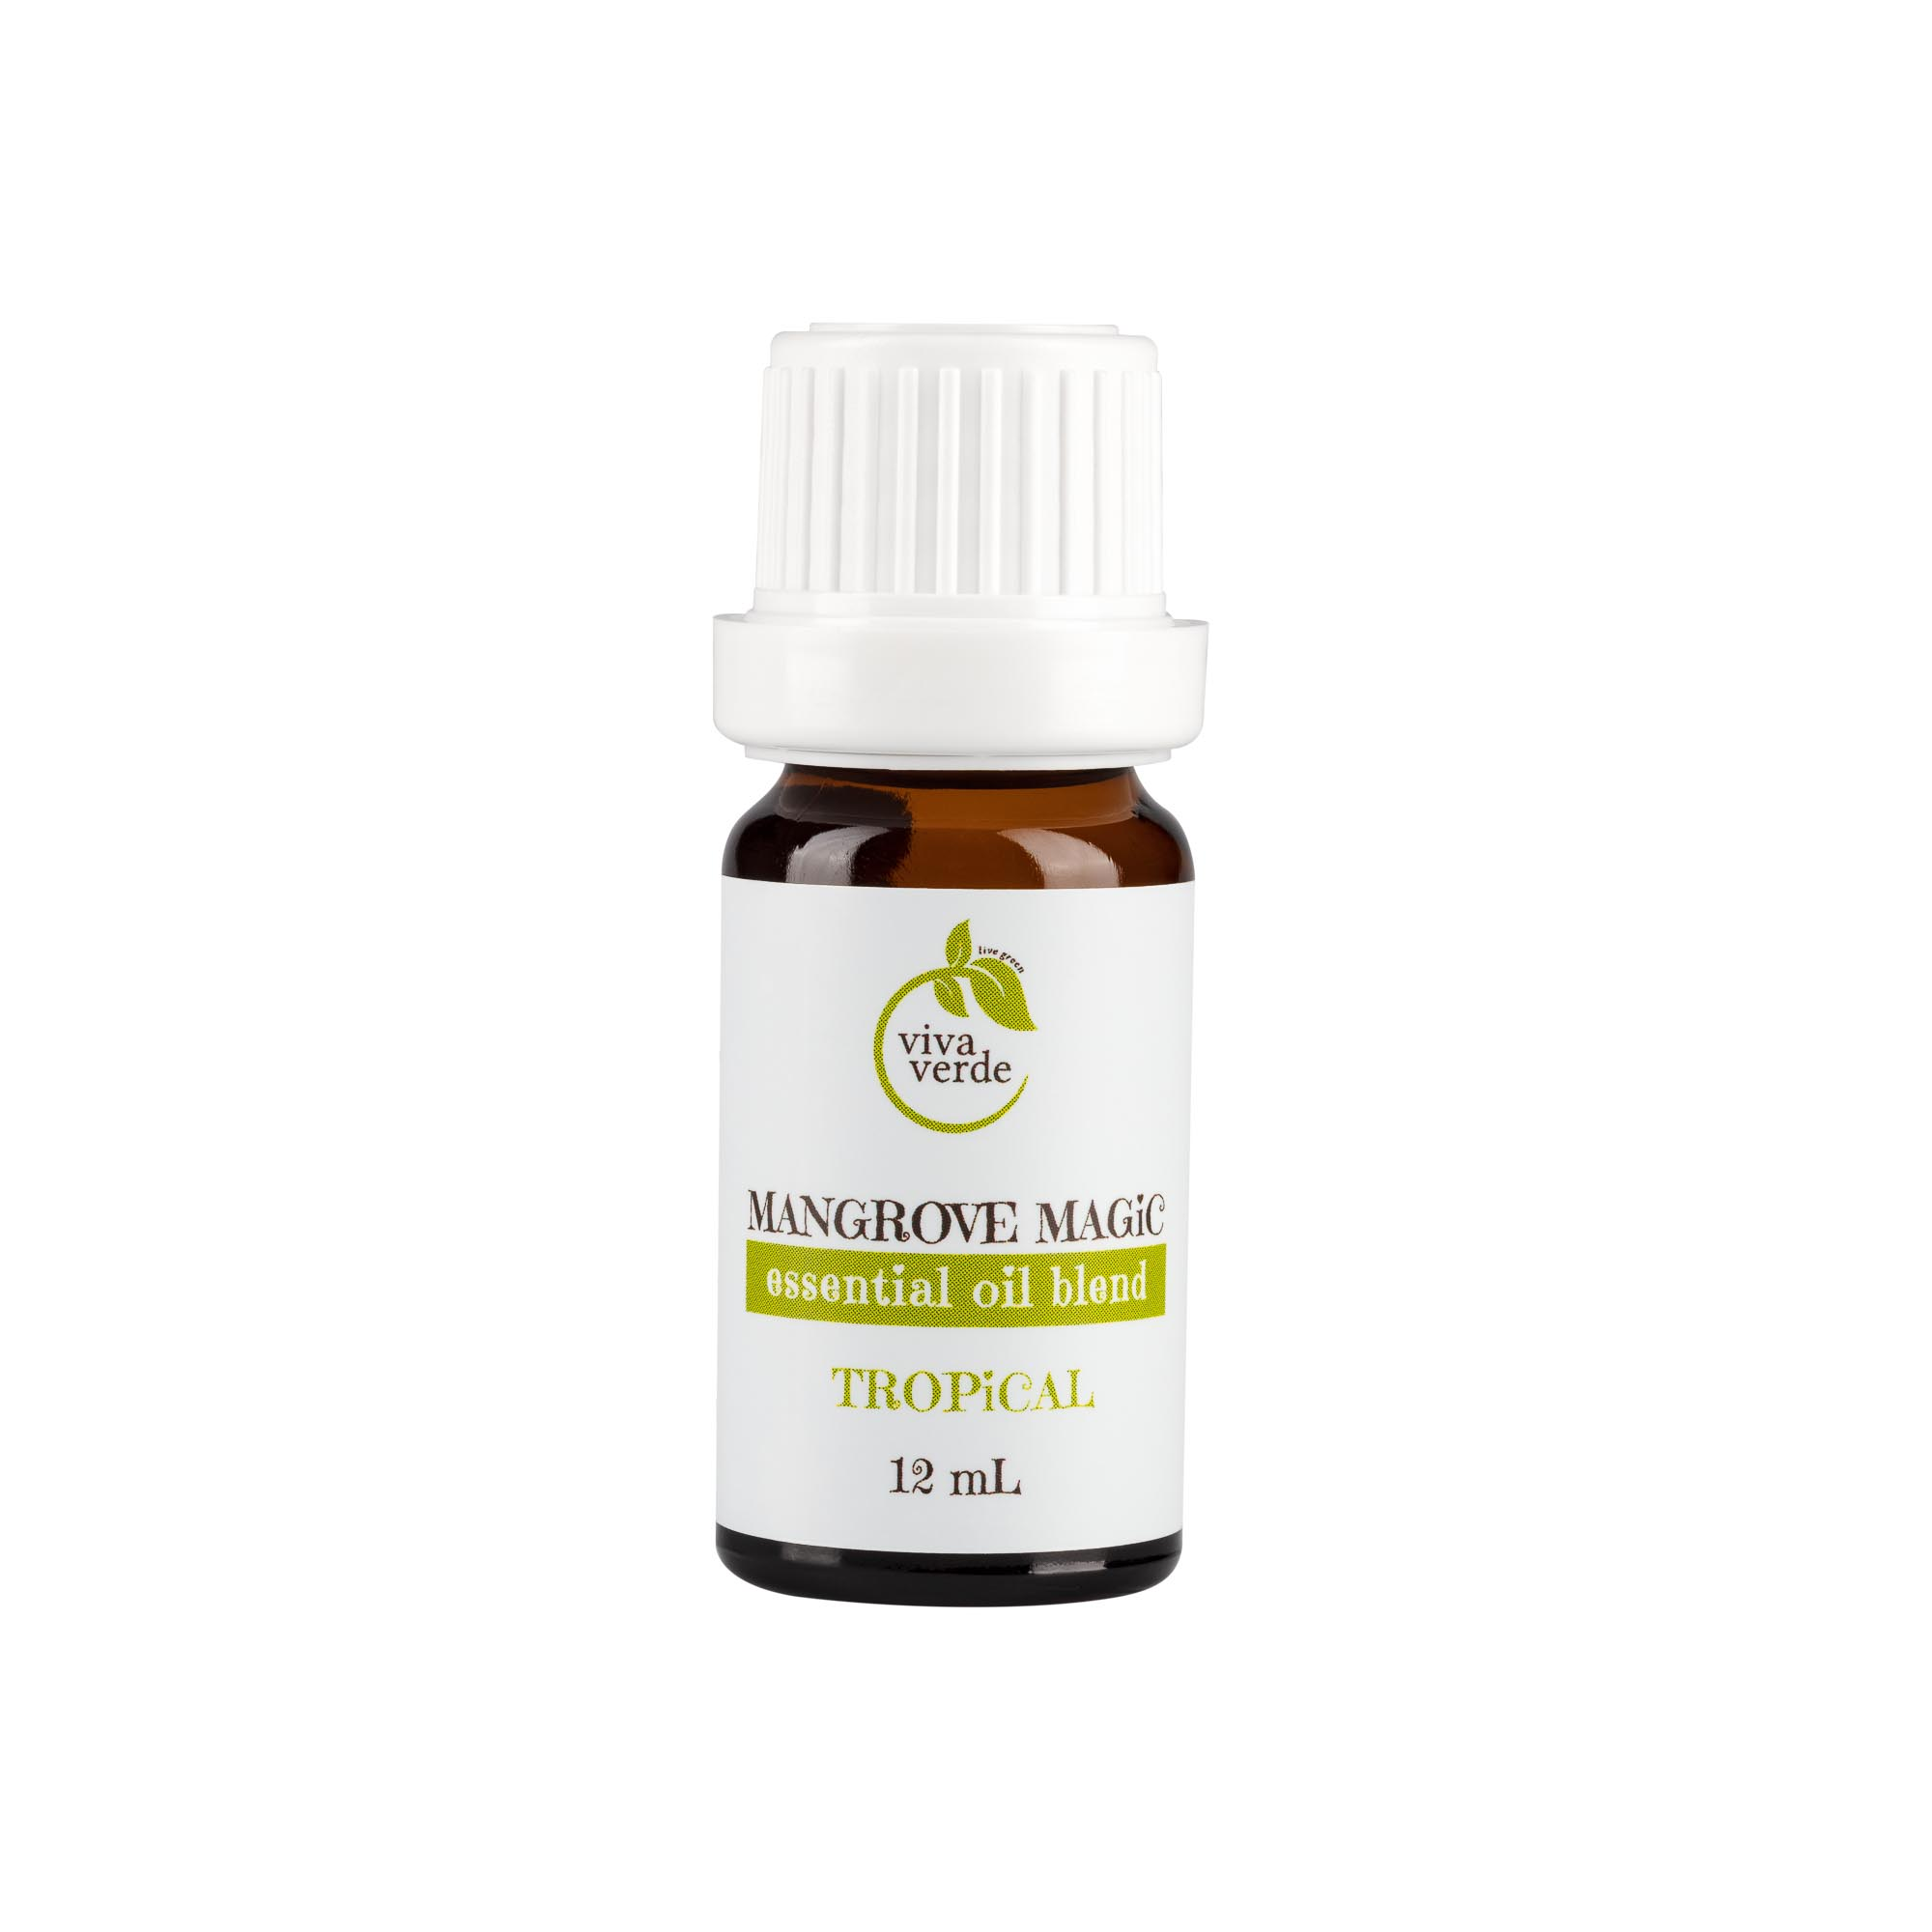 Mangrove Magic Oil Tropical 12 ml